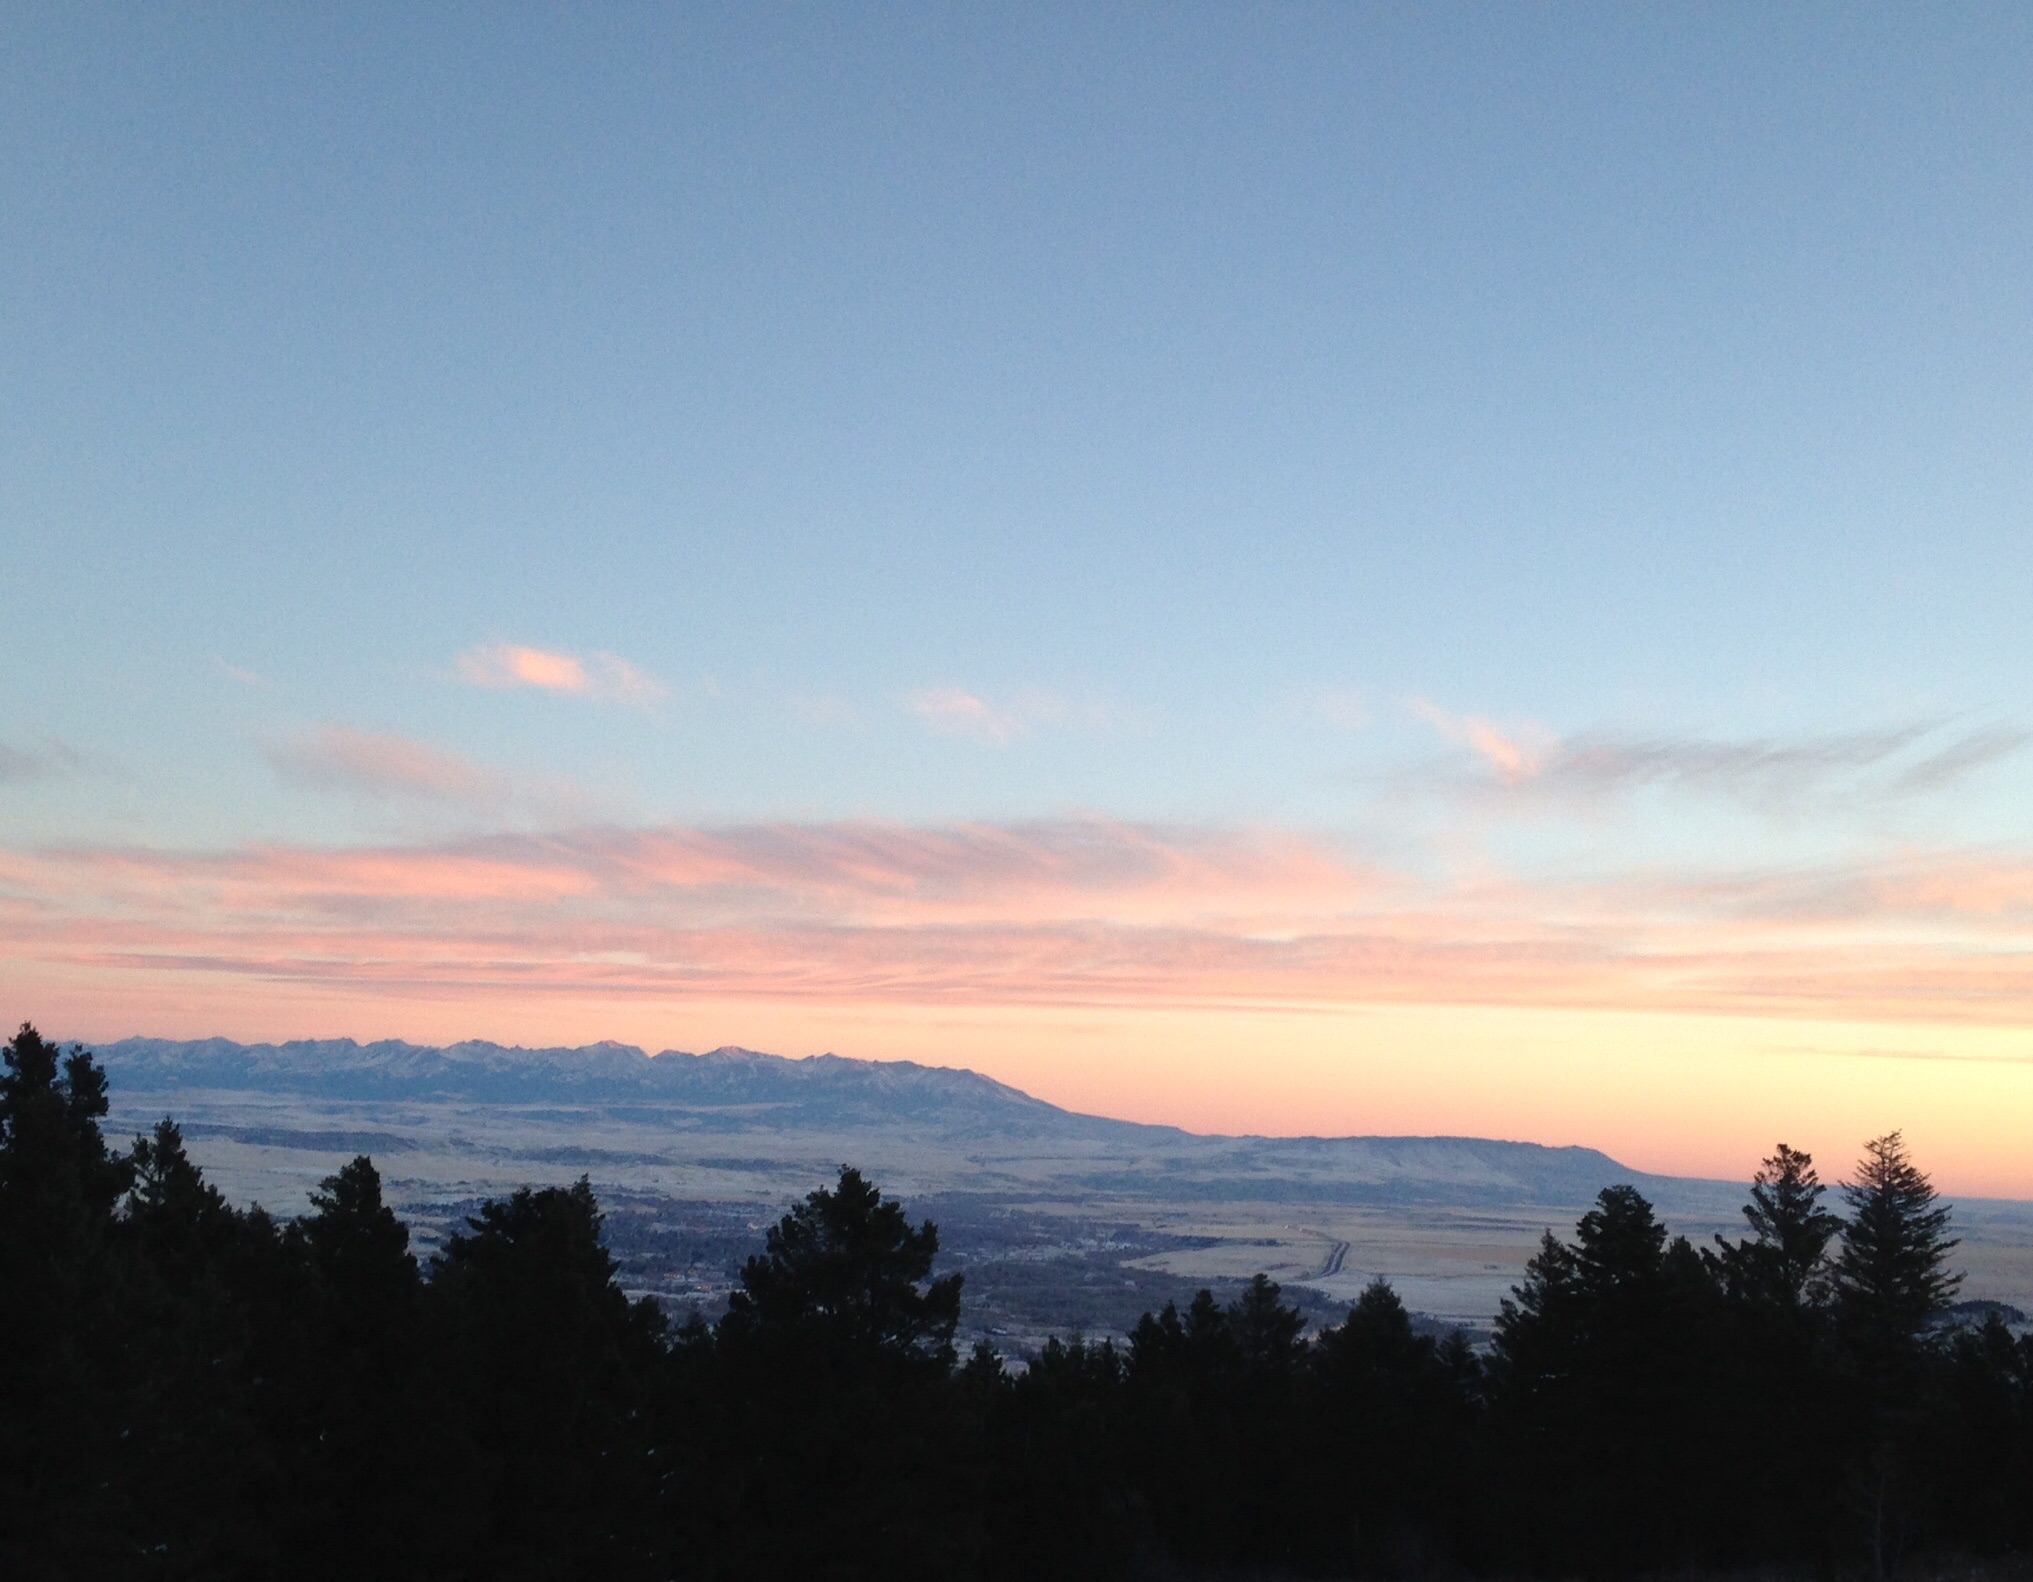 Sheep Mountain wakes up with a sigh beneath the soft winter flannel sky